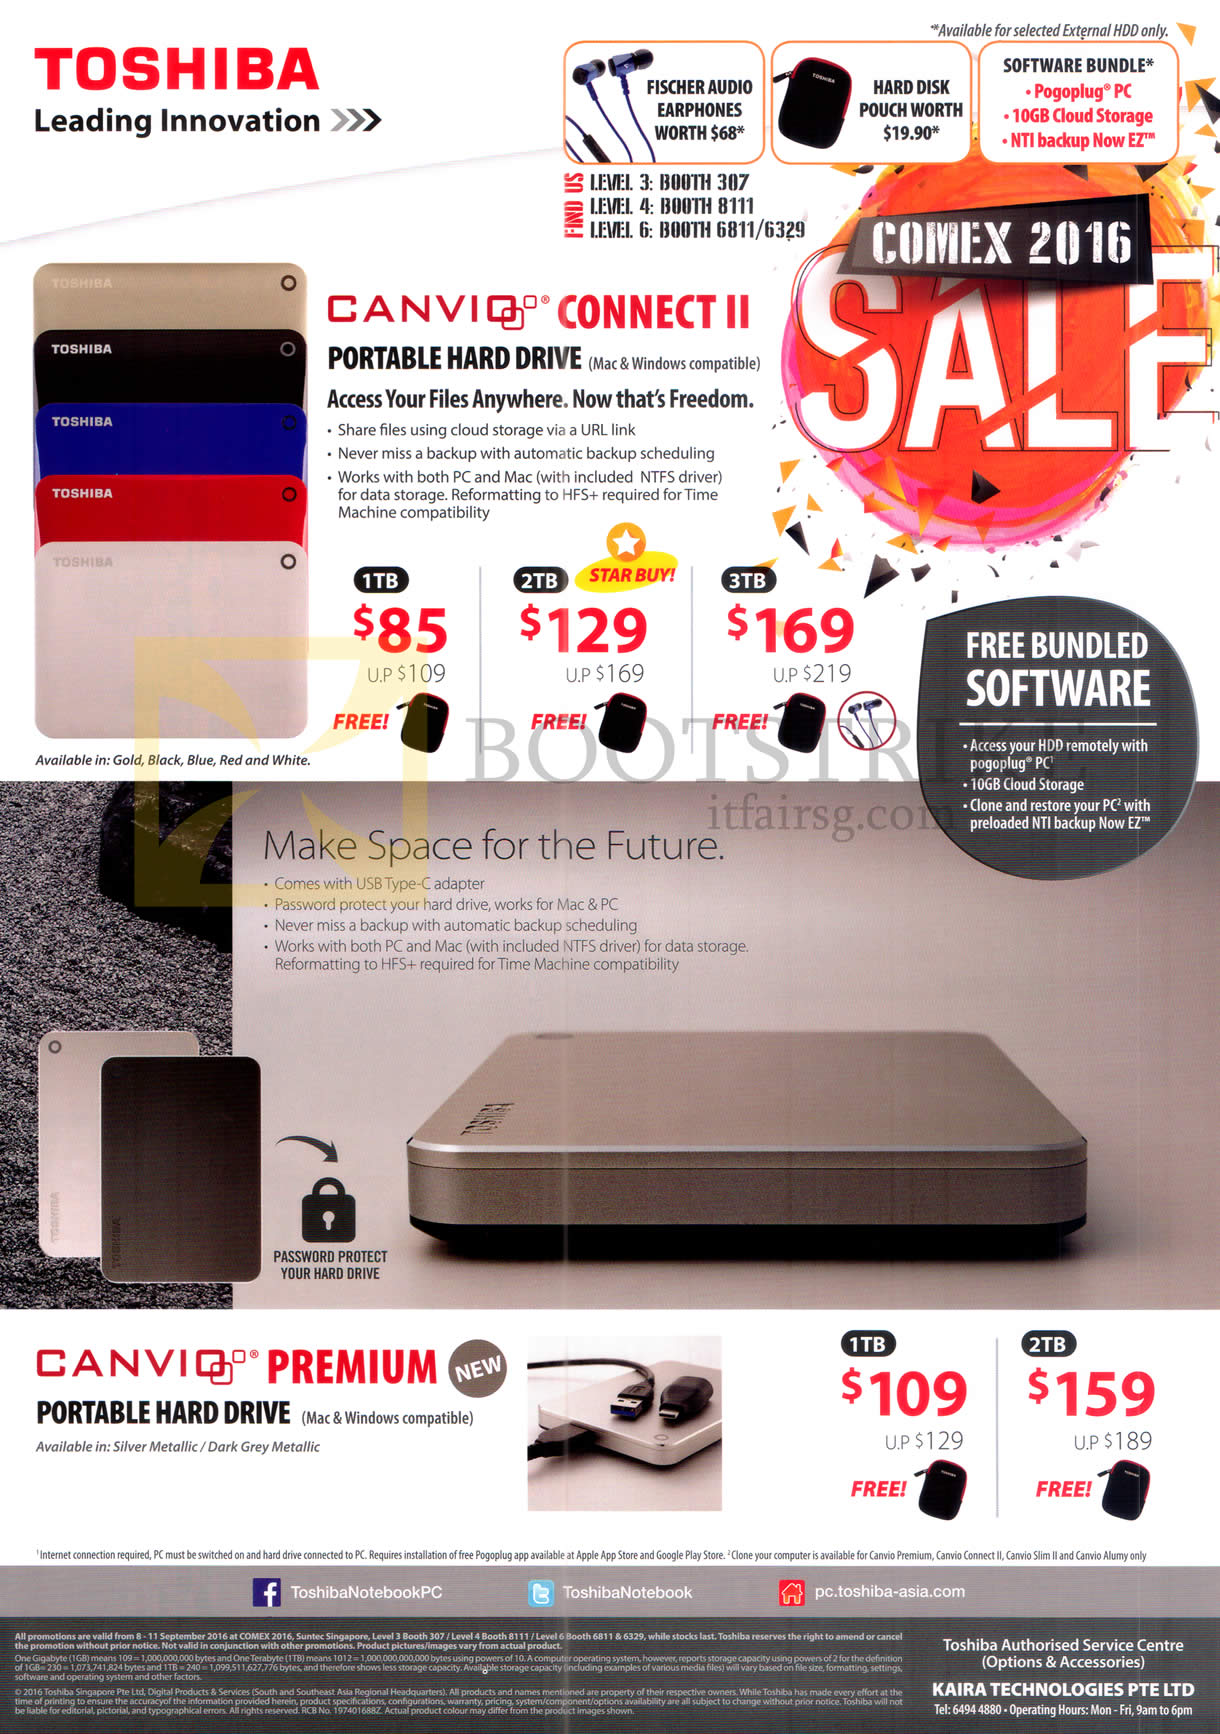 COMEX 2016 price list image brochure of Toshiba External Storage Drive Canvio Connect II, Premium, 1TB 2TB 3TB